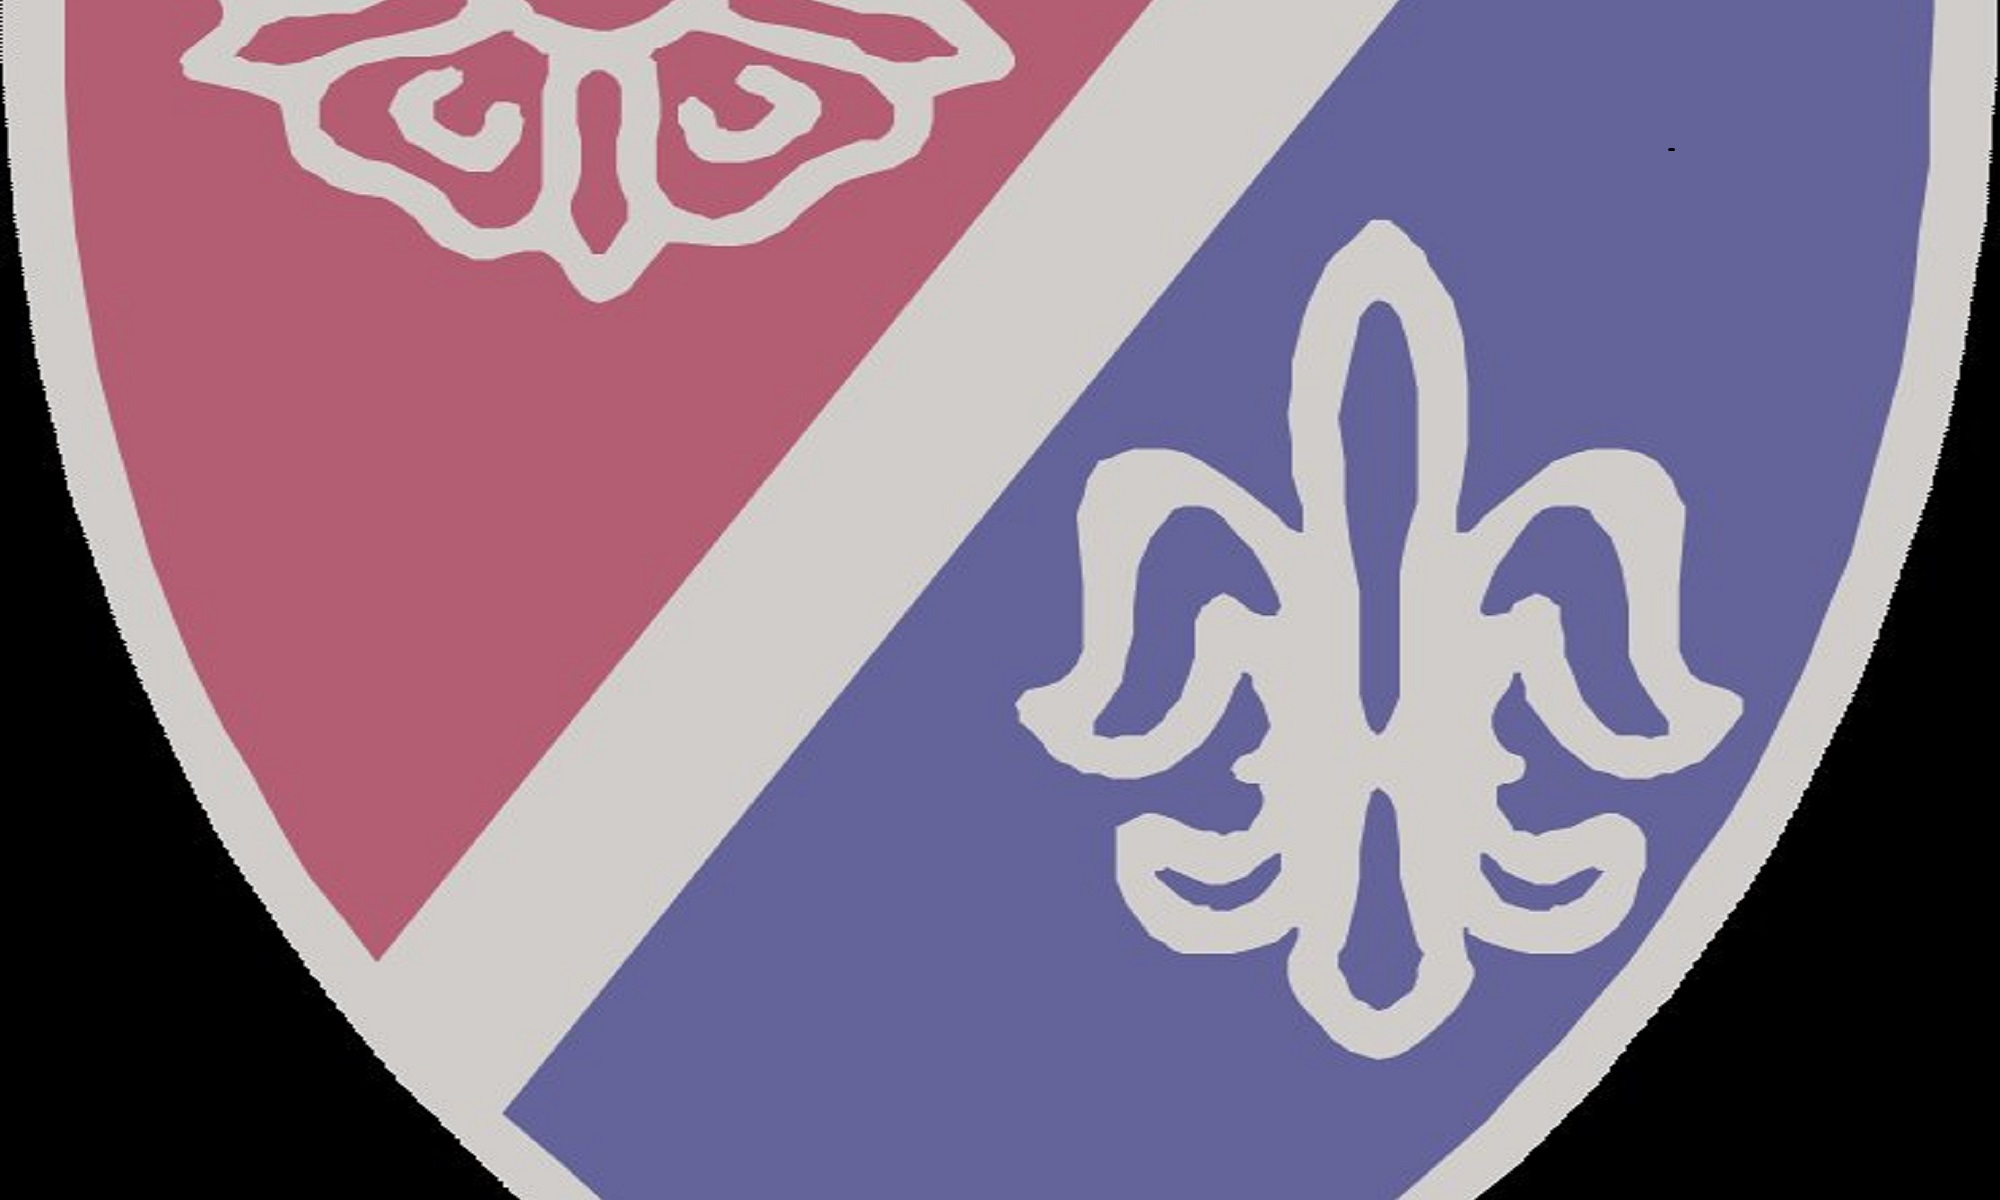 The Birmingham Anglo-French Society